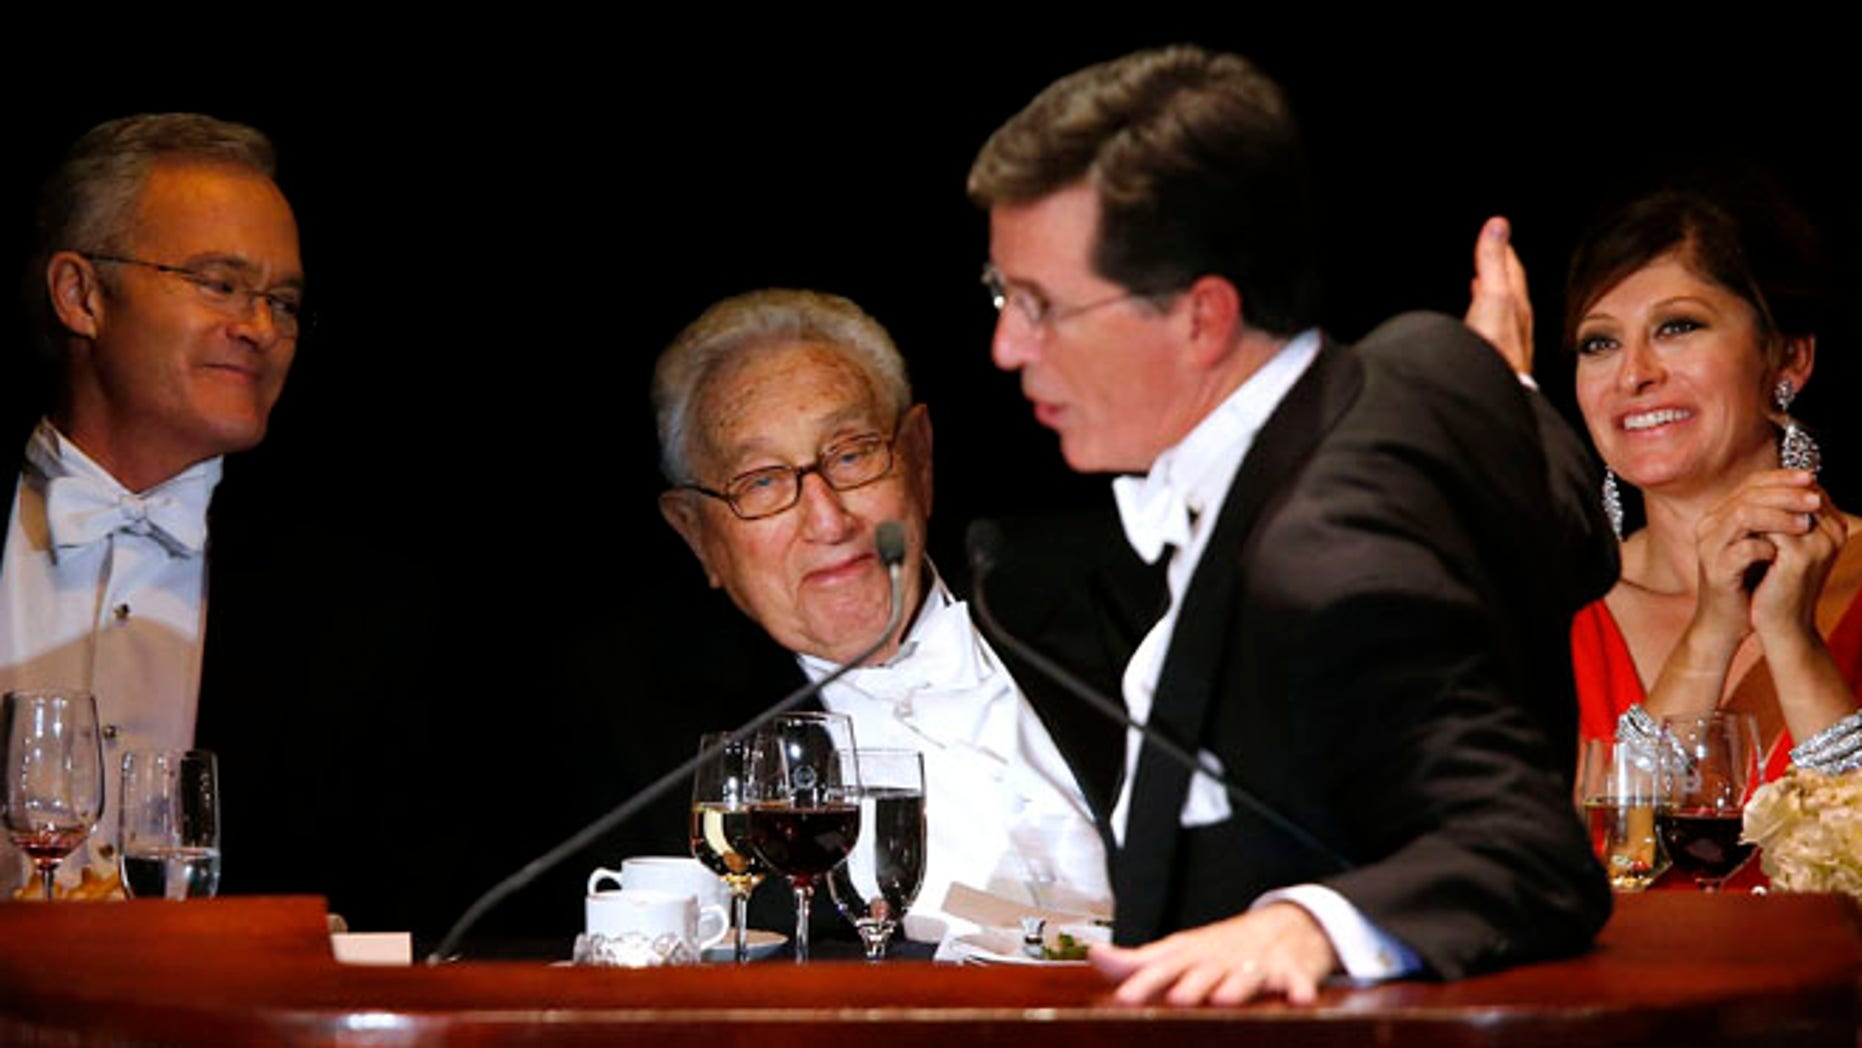 Oct. 17, 2013: Keynote speaker Stephen Colbert pokes fun at former U.S. Secretary of State Henry Kissinger, center, and CNBC anchor Maria Bartiromo, right, as CBS Evening News anchor Scott Pelley, left, looks on during the Alfred E. Smith Memorial Foundation Dinner, a charity gala organized by the Archdiocese of New York, at the Waldorf-Astoria hotel, in New York.